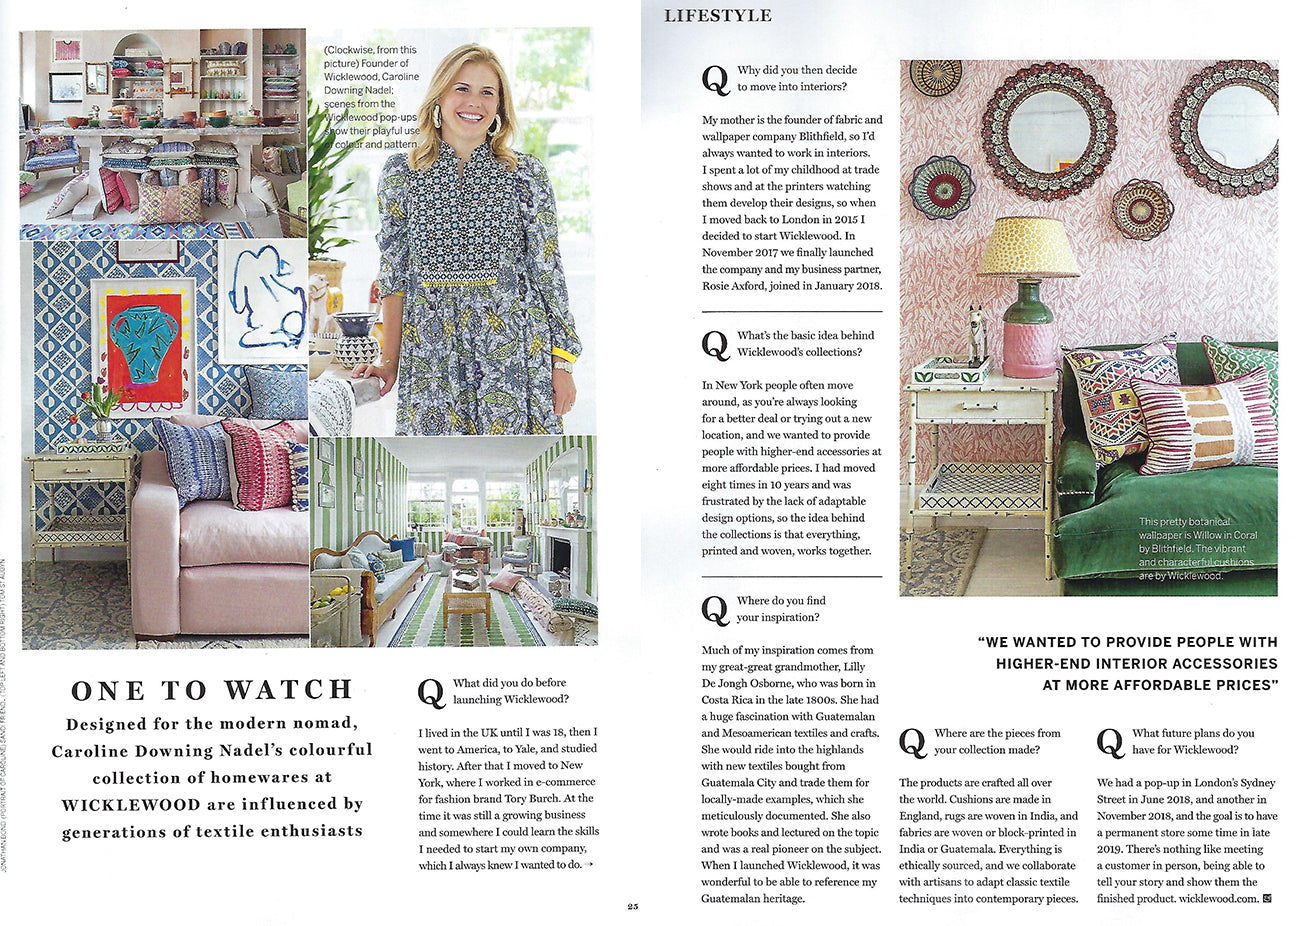 Wicklewood features in Homes & Gardens March 2019 - Ones To Watch article, featuring an interview with Caroline Downing Nadel and Claudia Baille